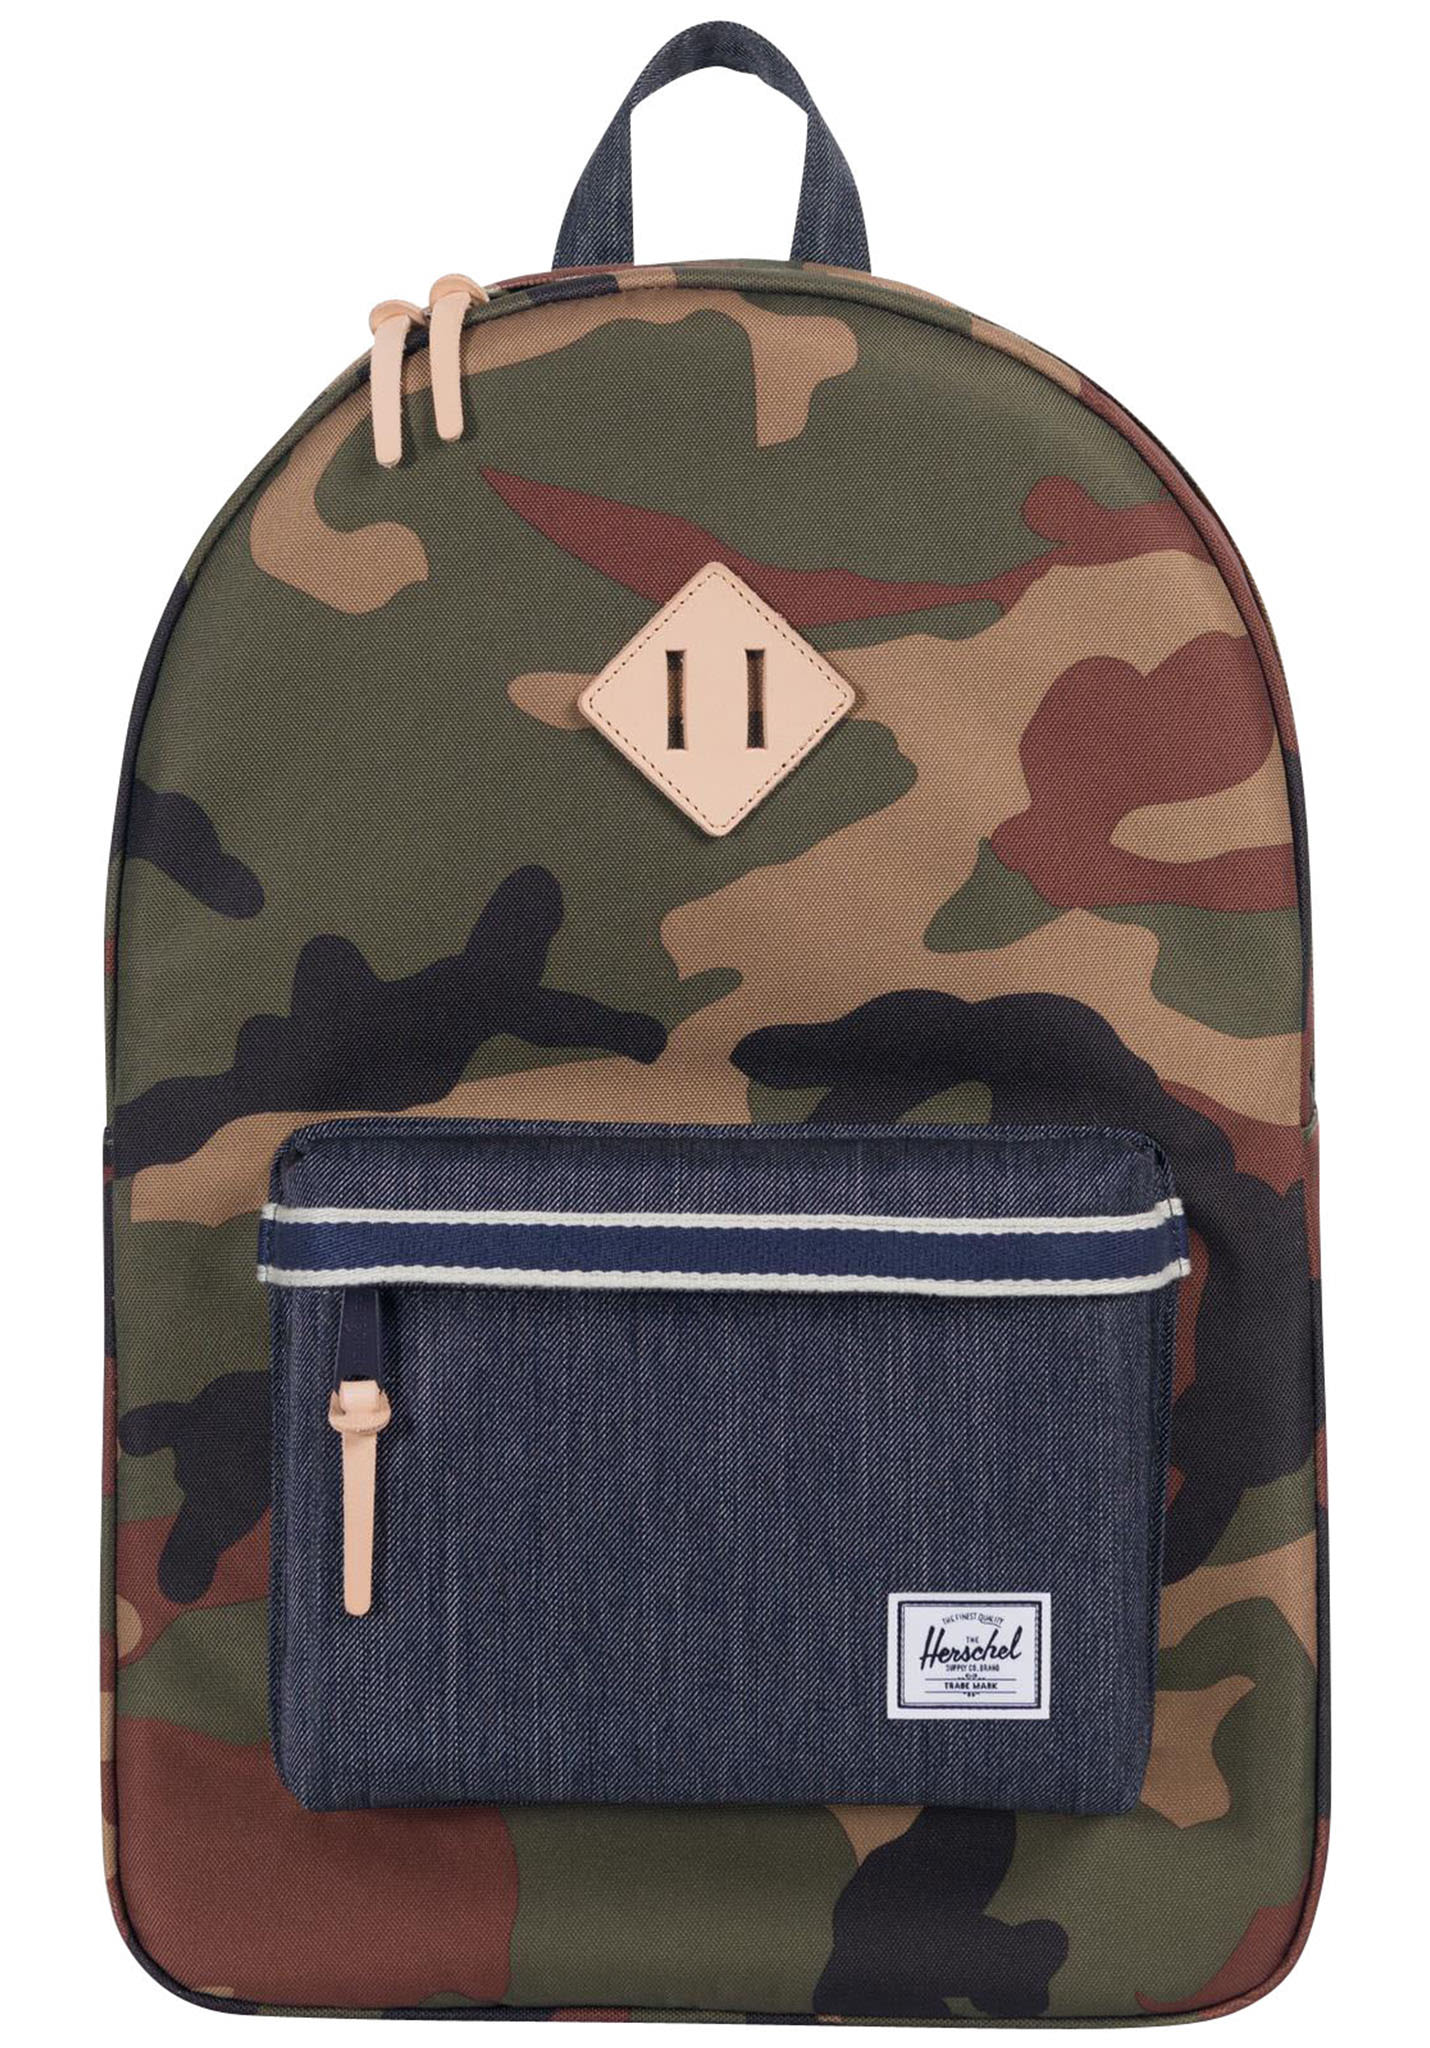 aaa0710d1b0 HERSCHEL SUPPLY CO Heritage 21,5L - Rugzak - Camouflage - Planet Sports